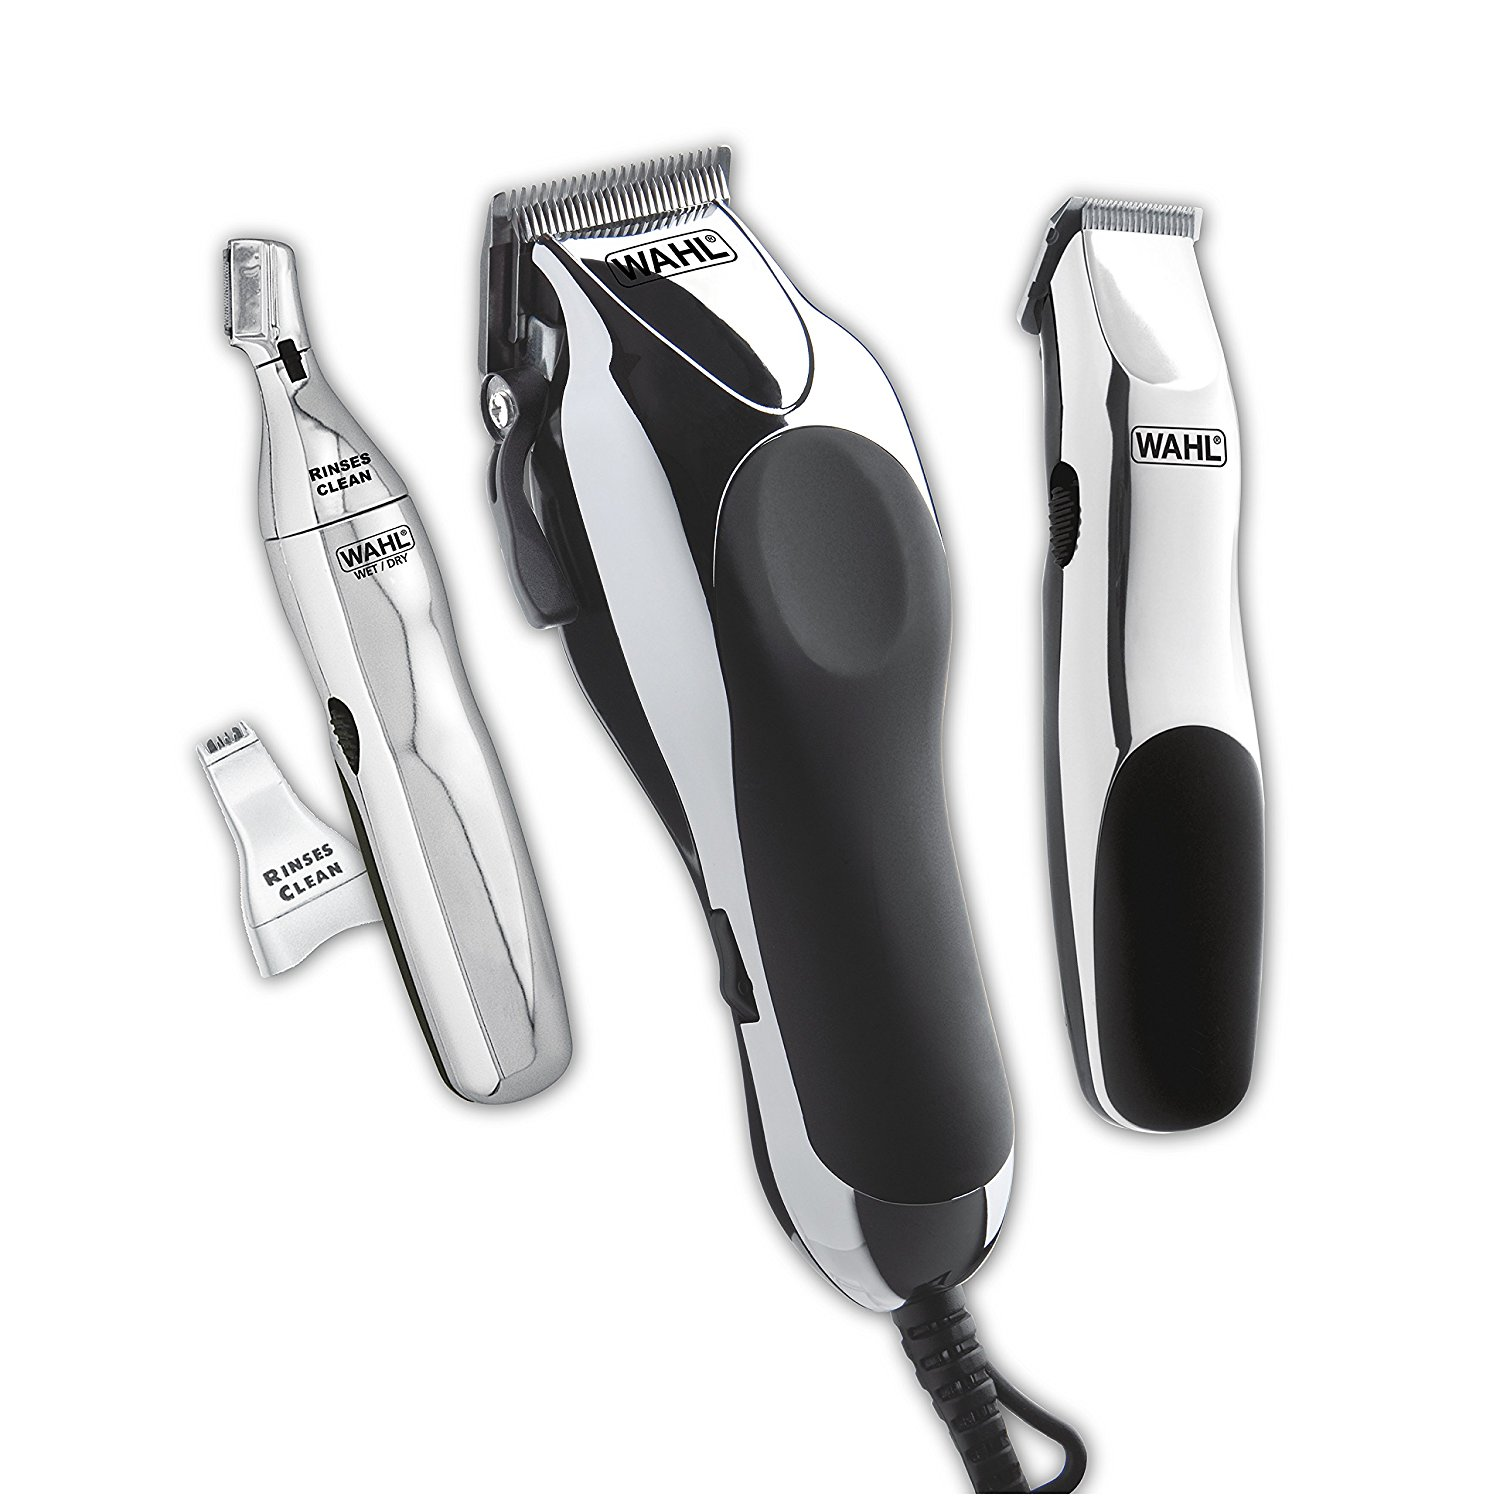 home haircut clippers top 10 best wahl clippers review and buying guide 2018 2798 | Wahl Clipper Home Barber Clipper Kit with hair clipper